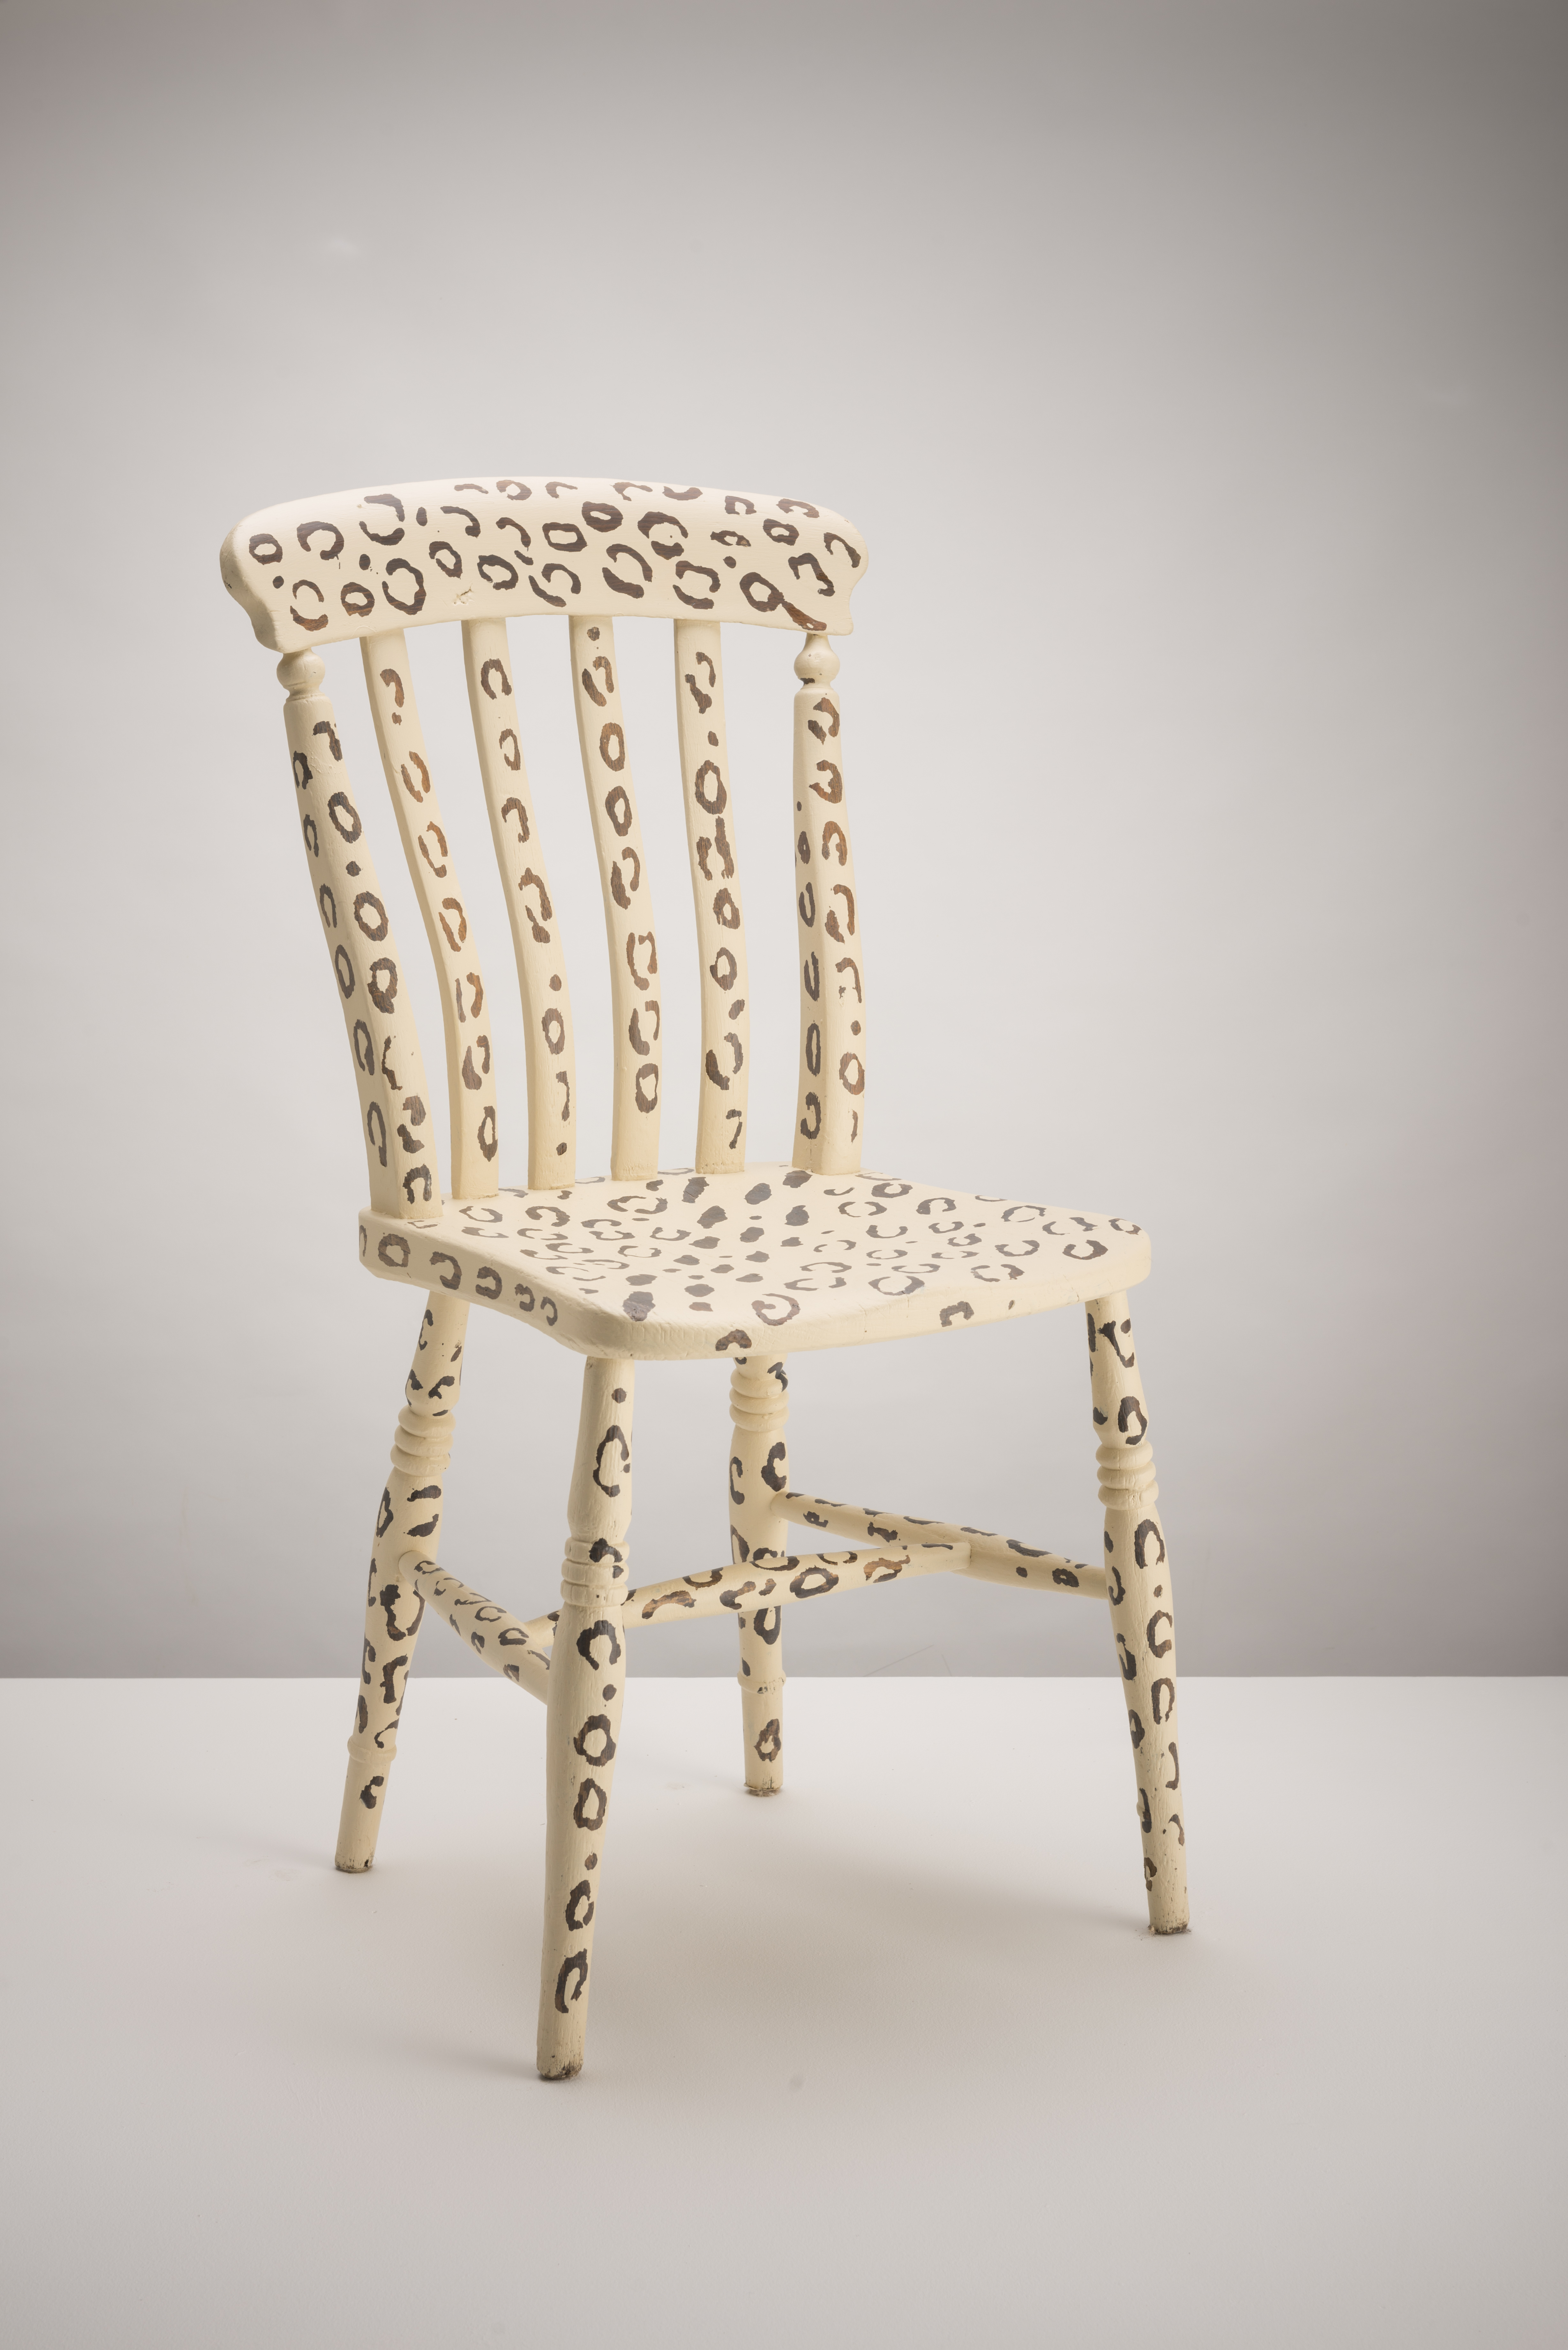 Example Leopard Print Wooden Chair. The print is the original wood underneath.